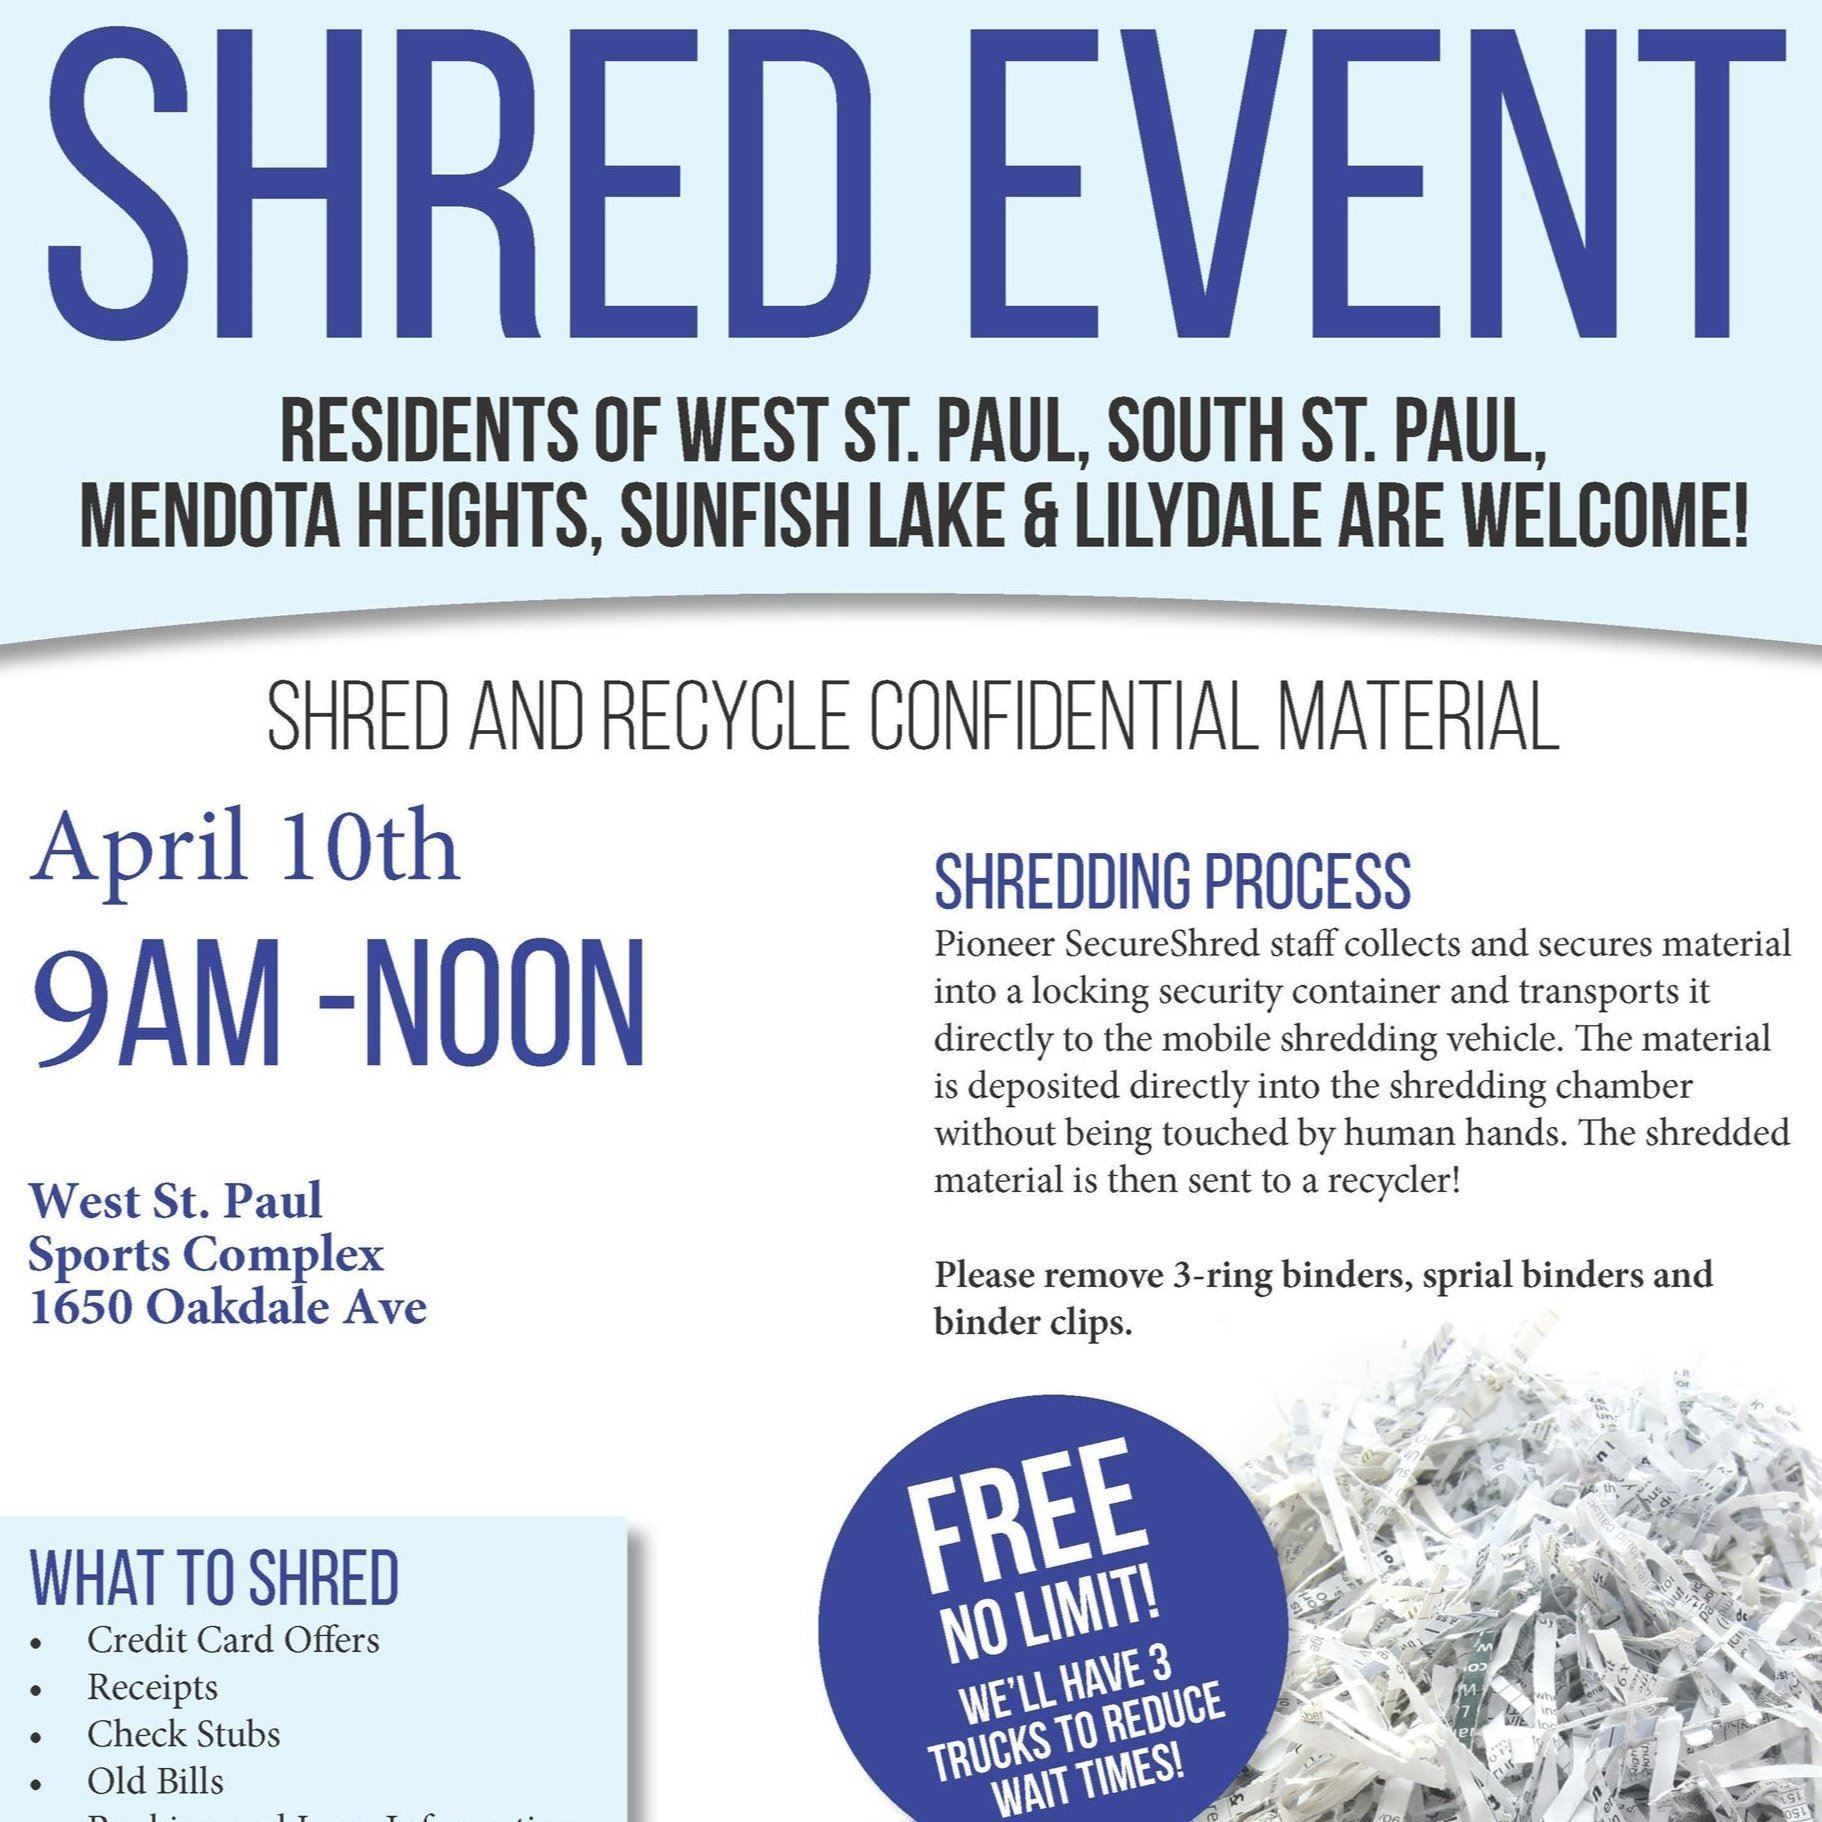 Image of the Shred Event Flyer scheduled for April 10, 2021